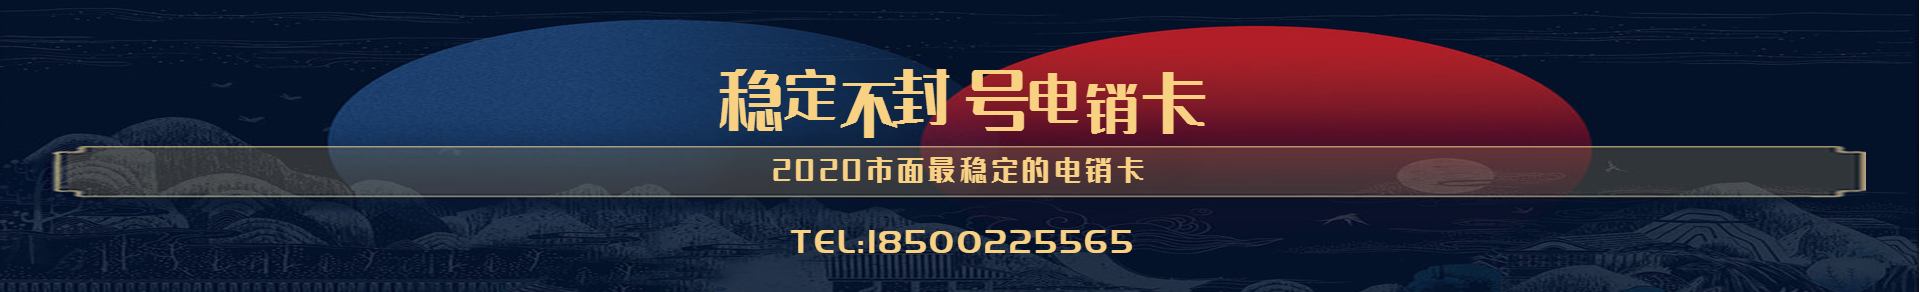 http://www.dxkgw.cn/data/upload/201912/20191230104245_869.png